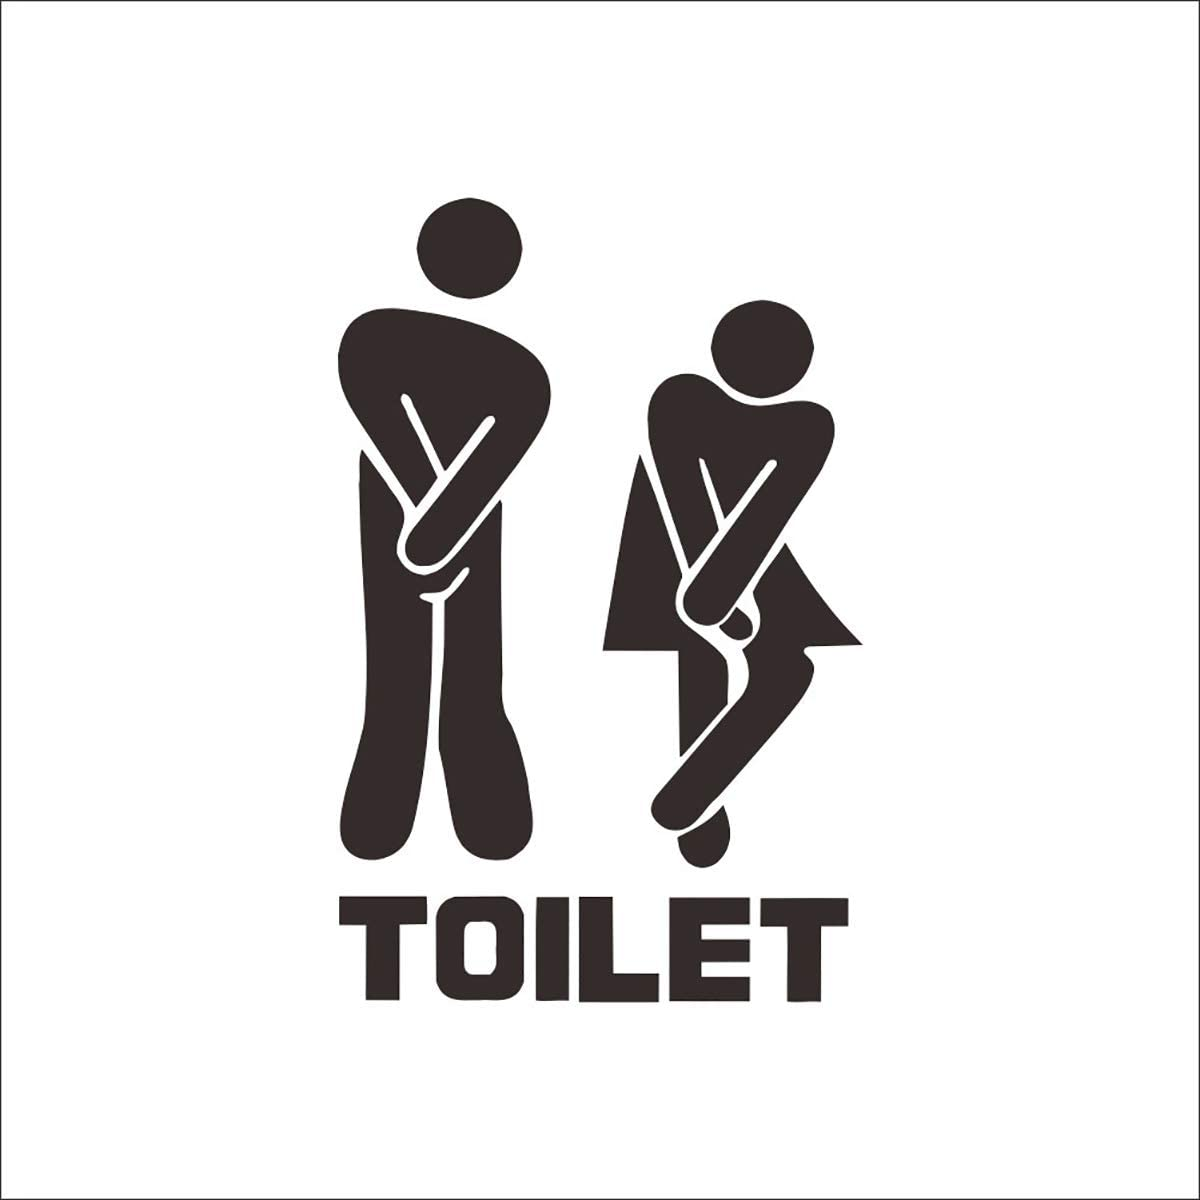 CHRISLZ 6PCS Creative Toilet Entrance Sign Decal PVC Sticker For Shop Office Home Cafe Hotel